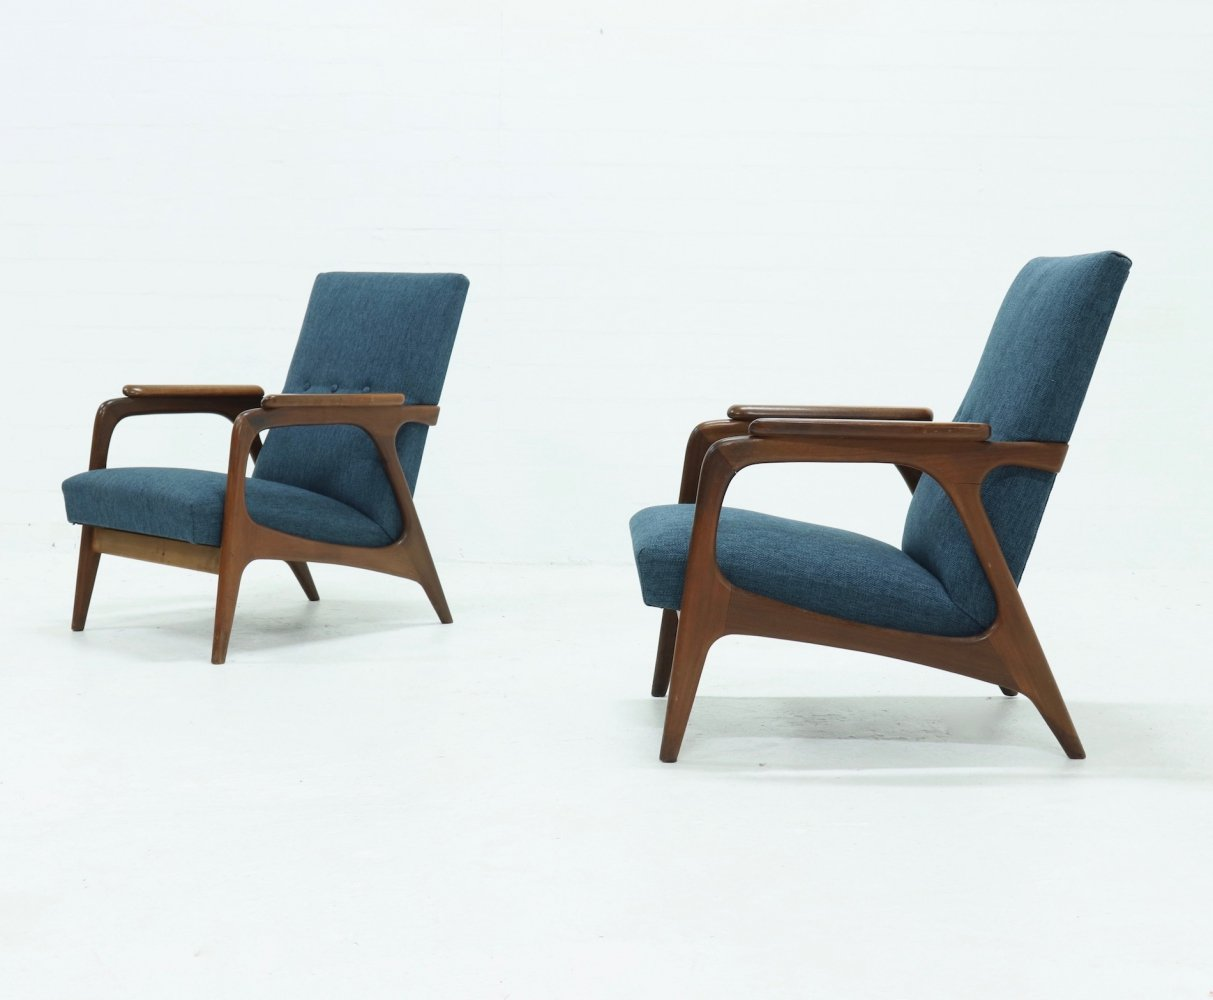 Set of 2 Mid-Century Teak Armchairs by Topform, 1960s